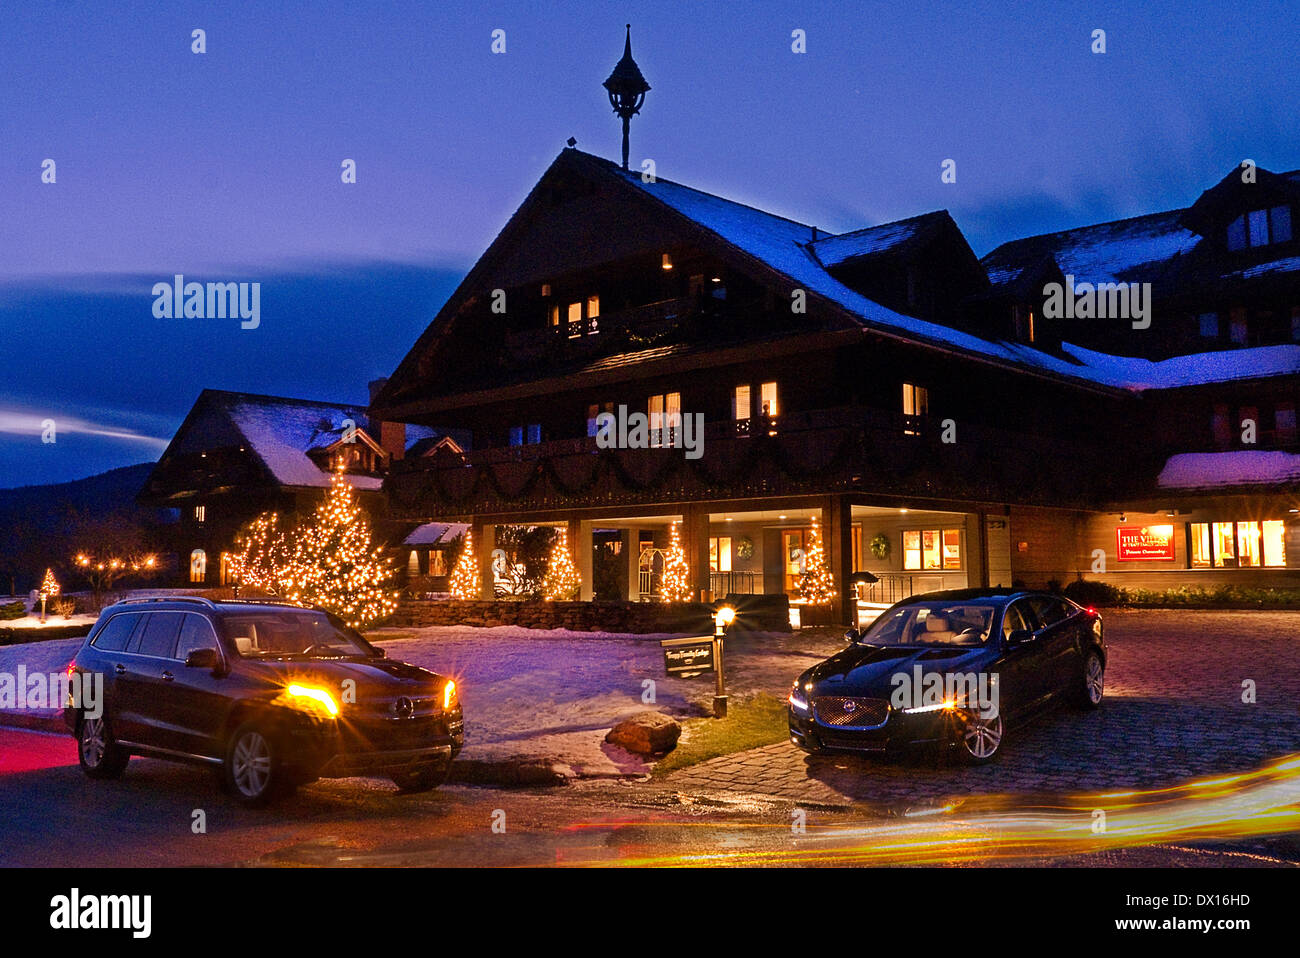 Jaguar XJ AWD & Mercedes Trapp Family Lodge near Stowe Vermont USA - Stock Image